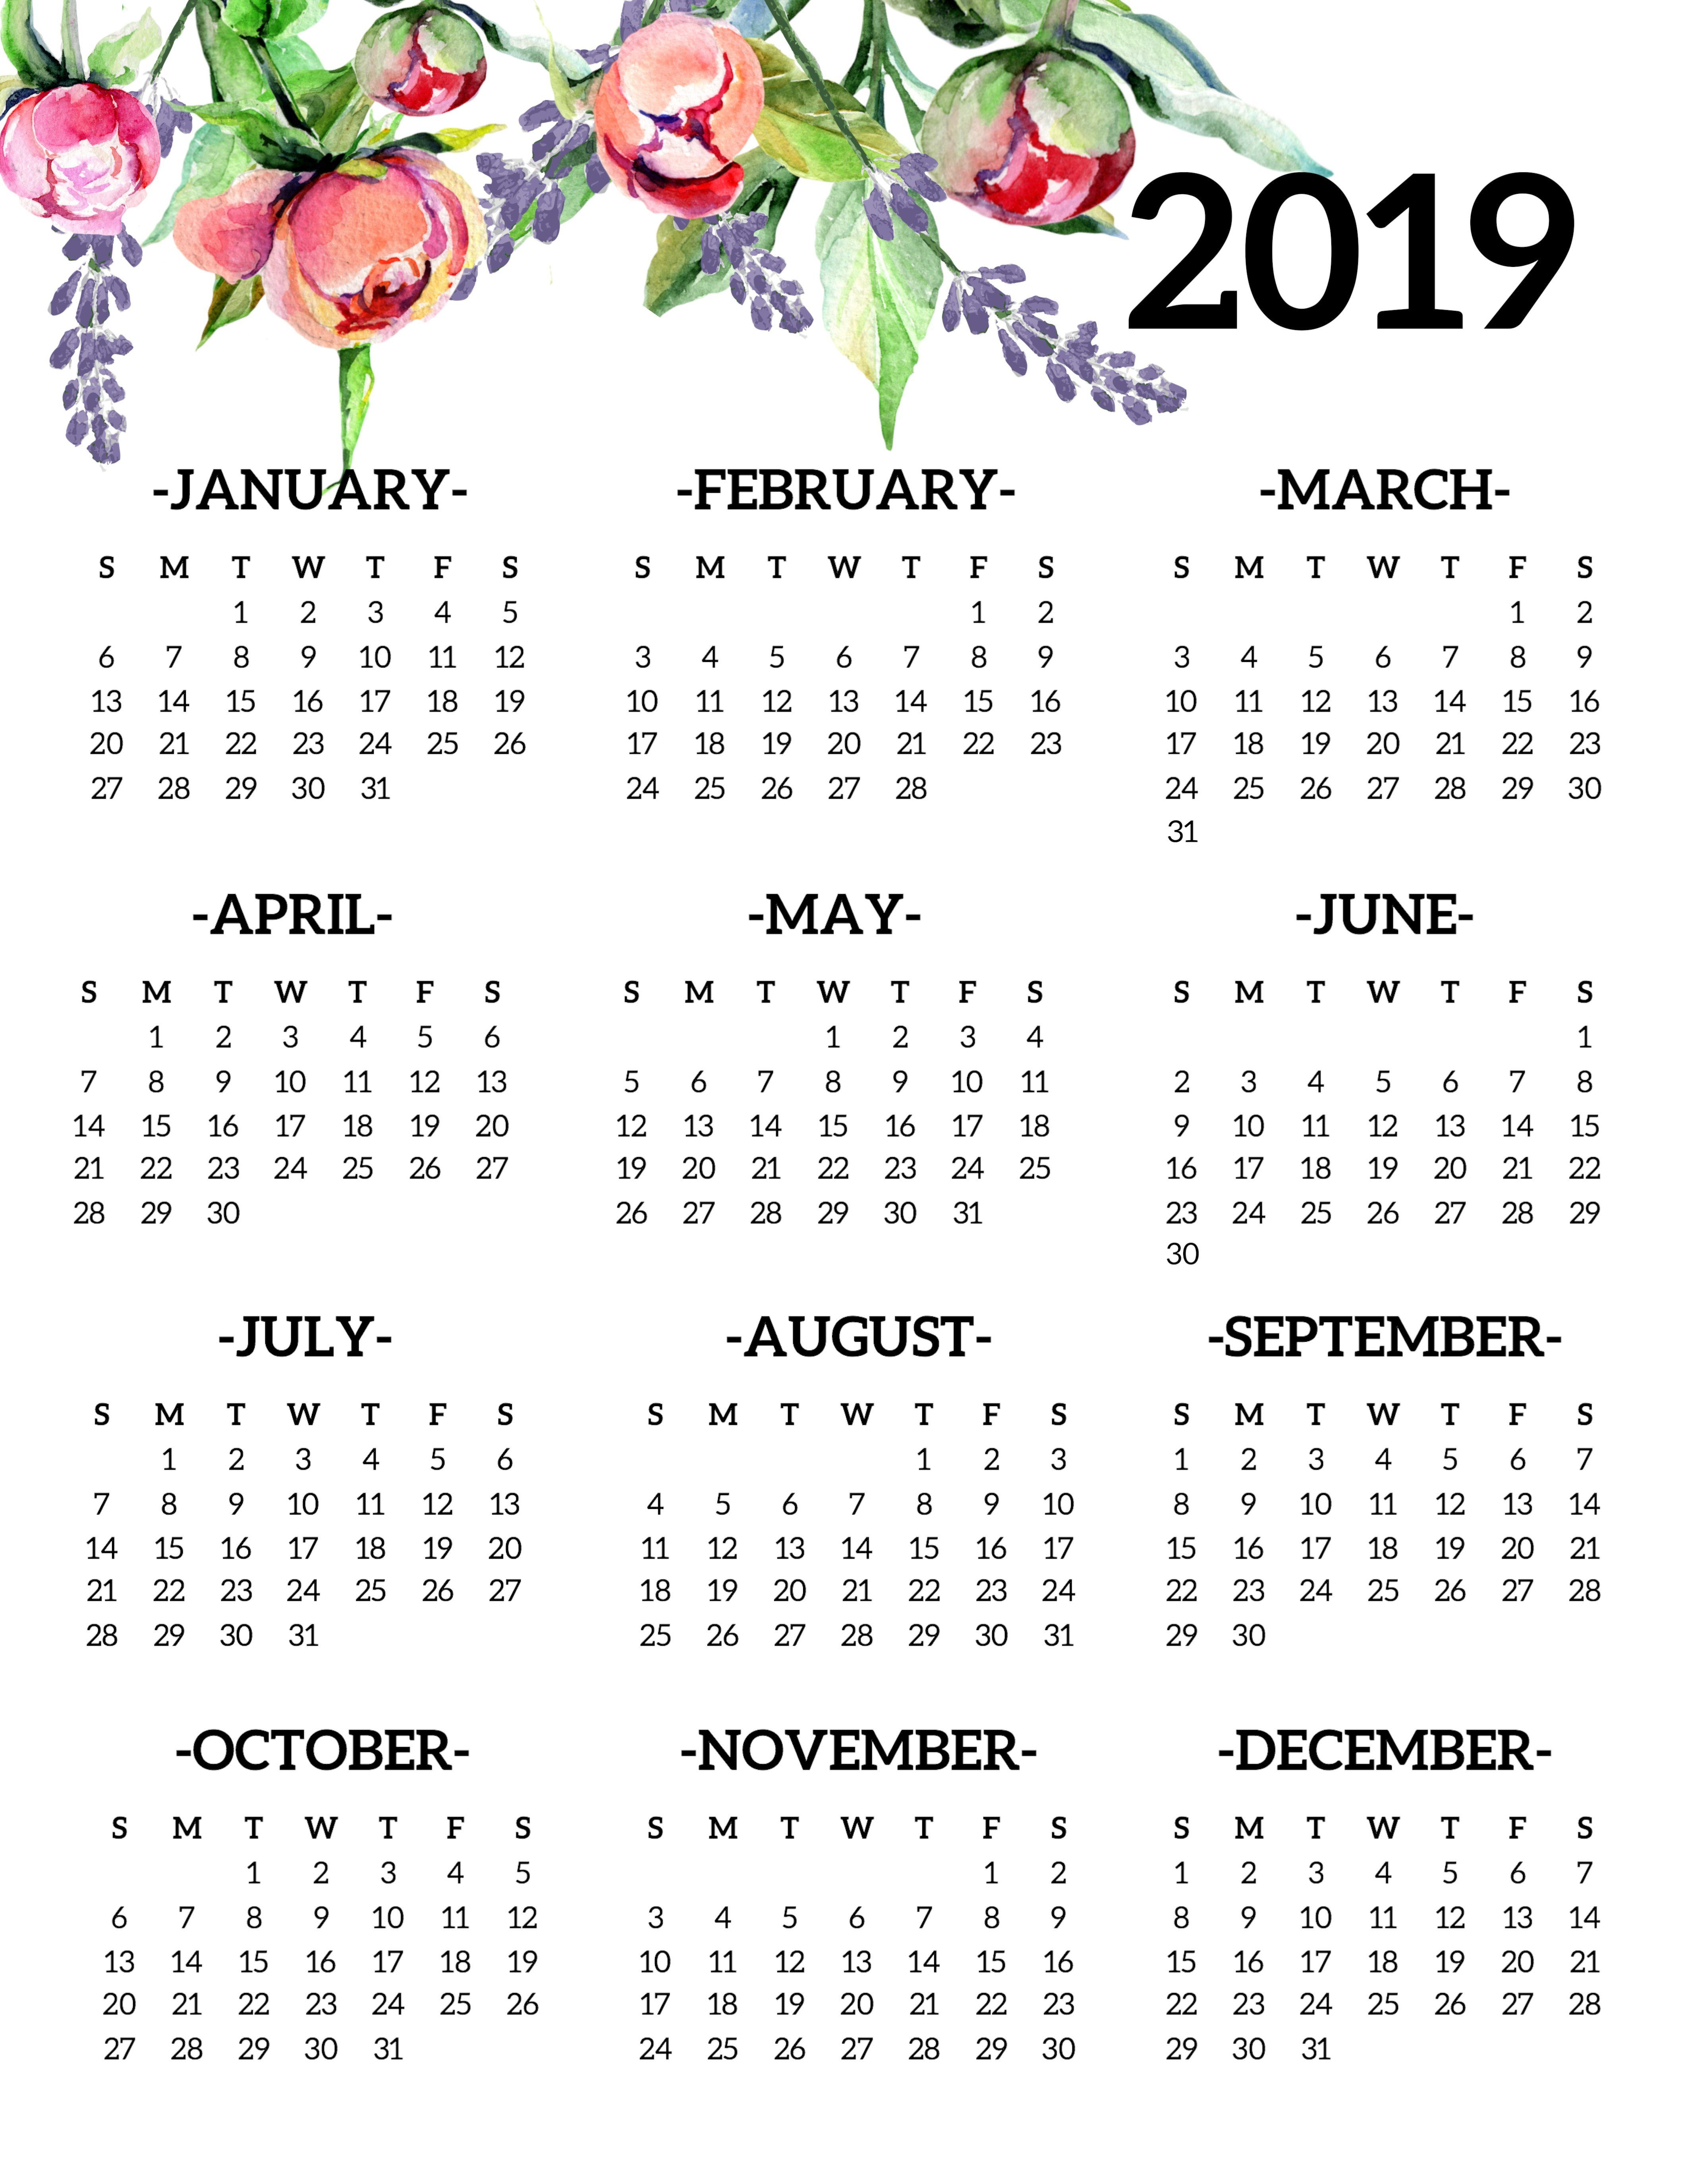 Free Printable 2019 Calendar Yearly One Page Floral - Paper Trail Design Calendar 2019 Year Printable